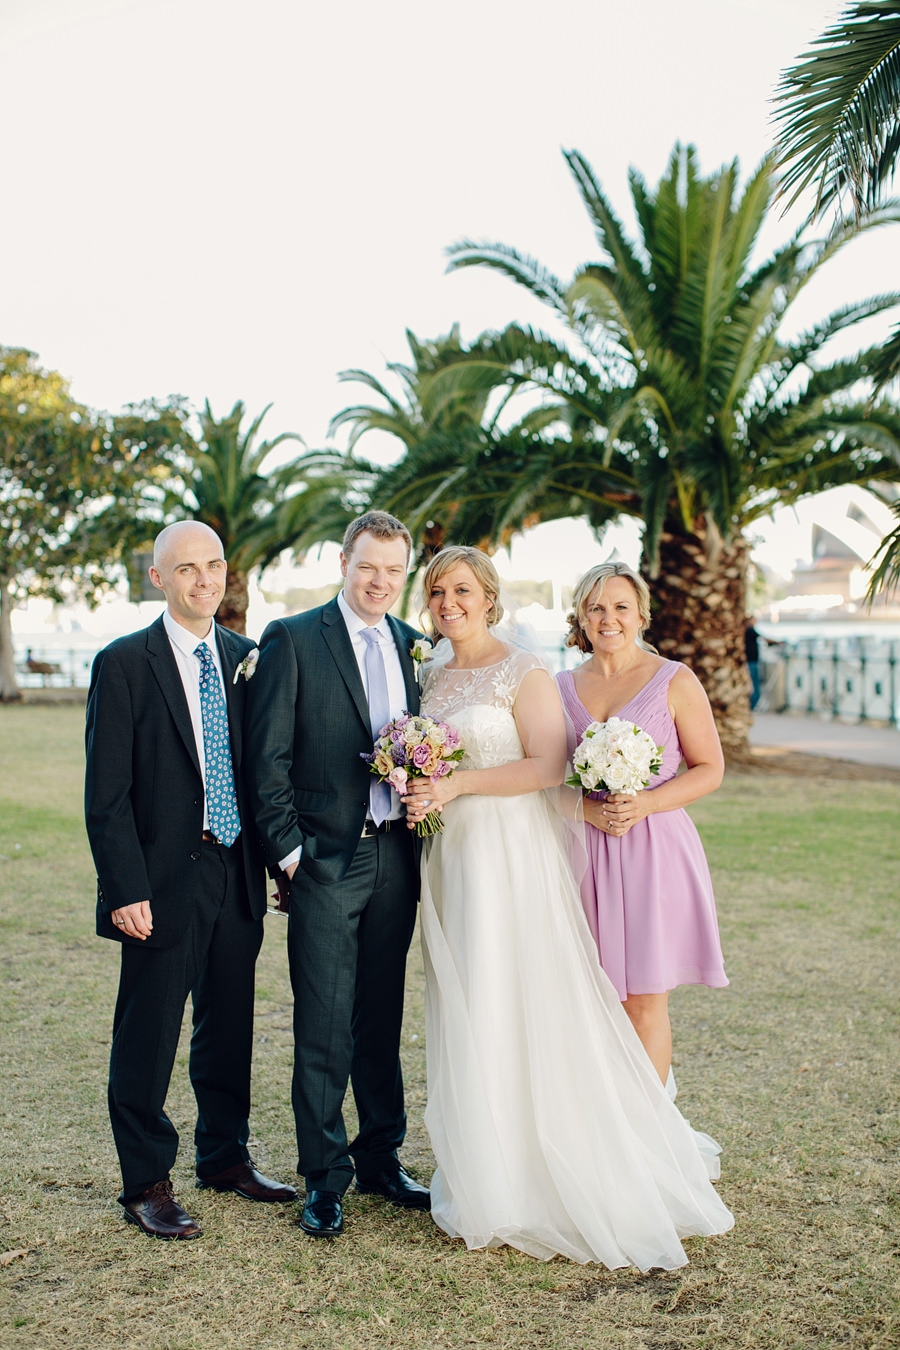 Kirribilli Wedding Photographers: Bride & Groom Portraits